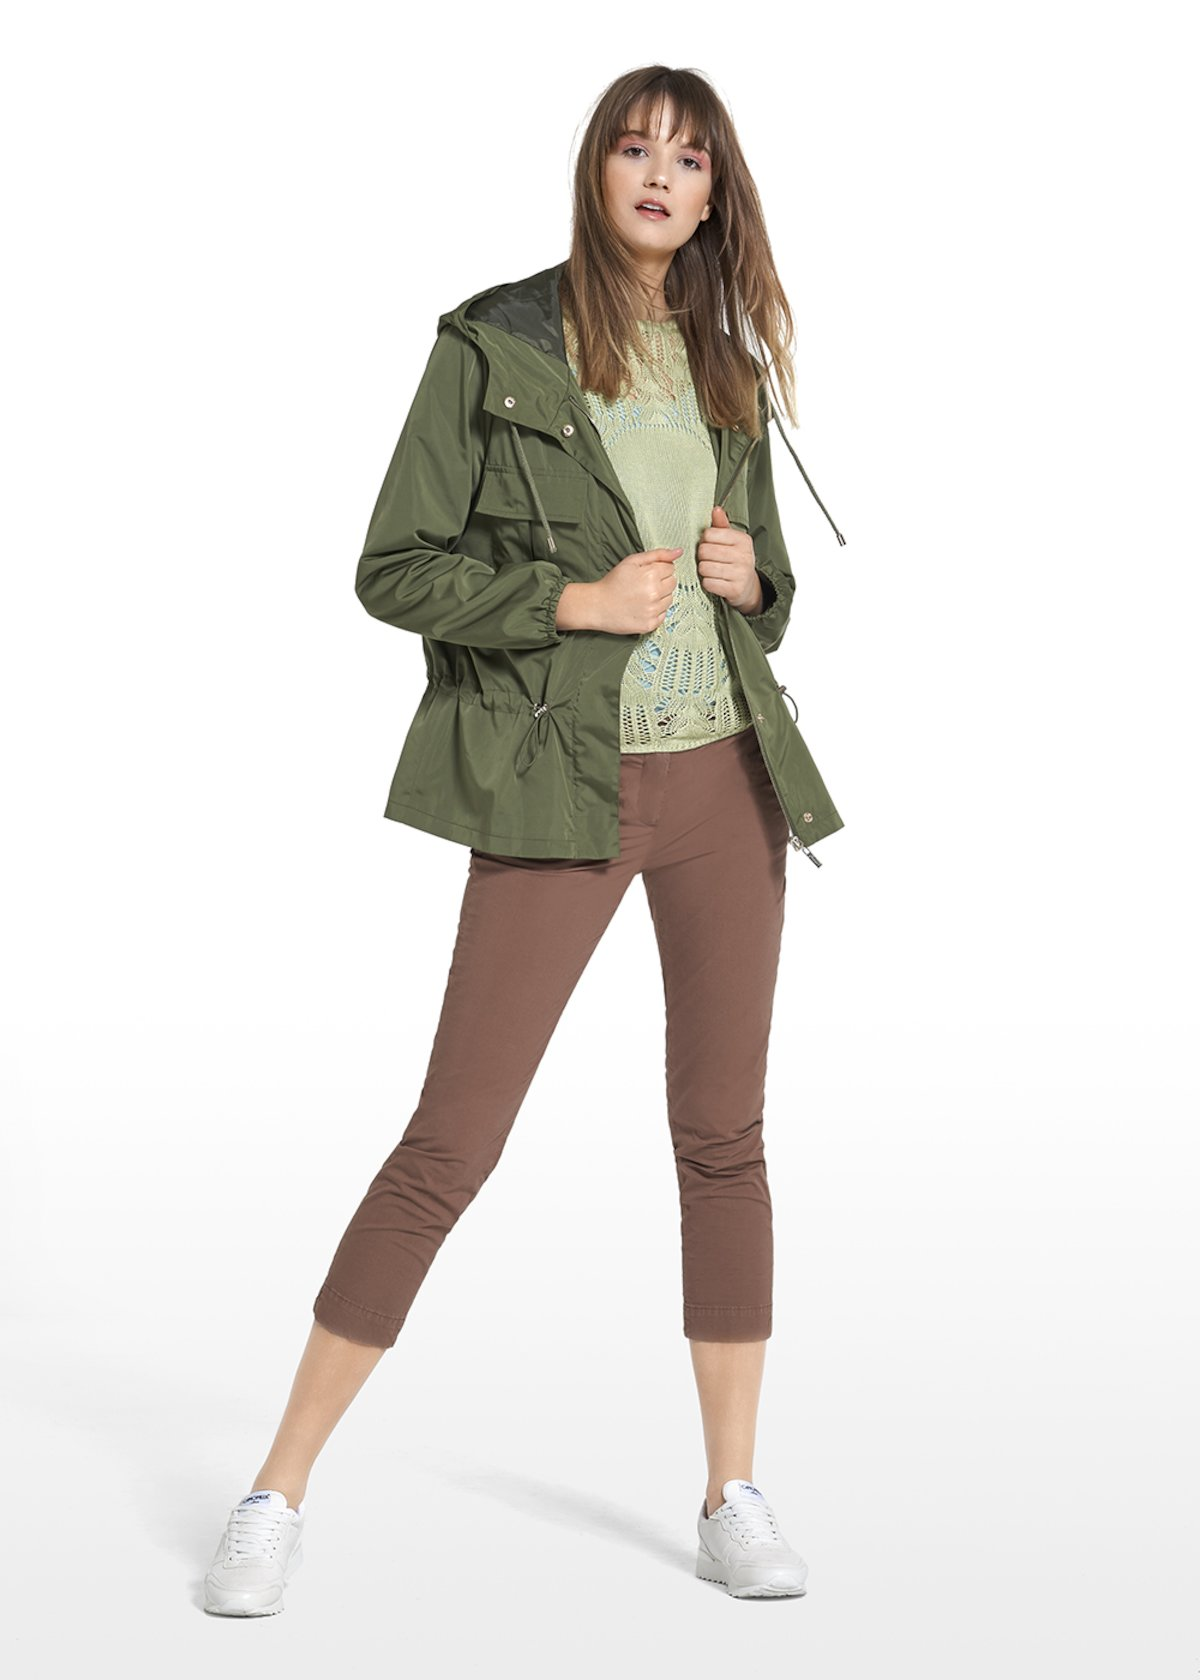 Gil jacket with drawstring and pockets on the front - Alga - Woman - Category image